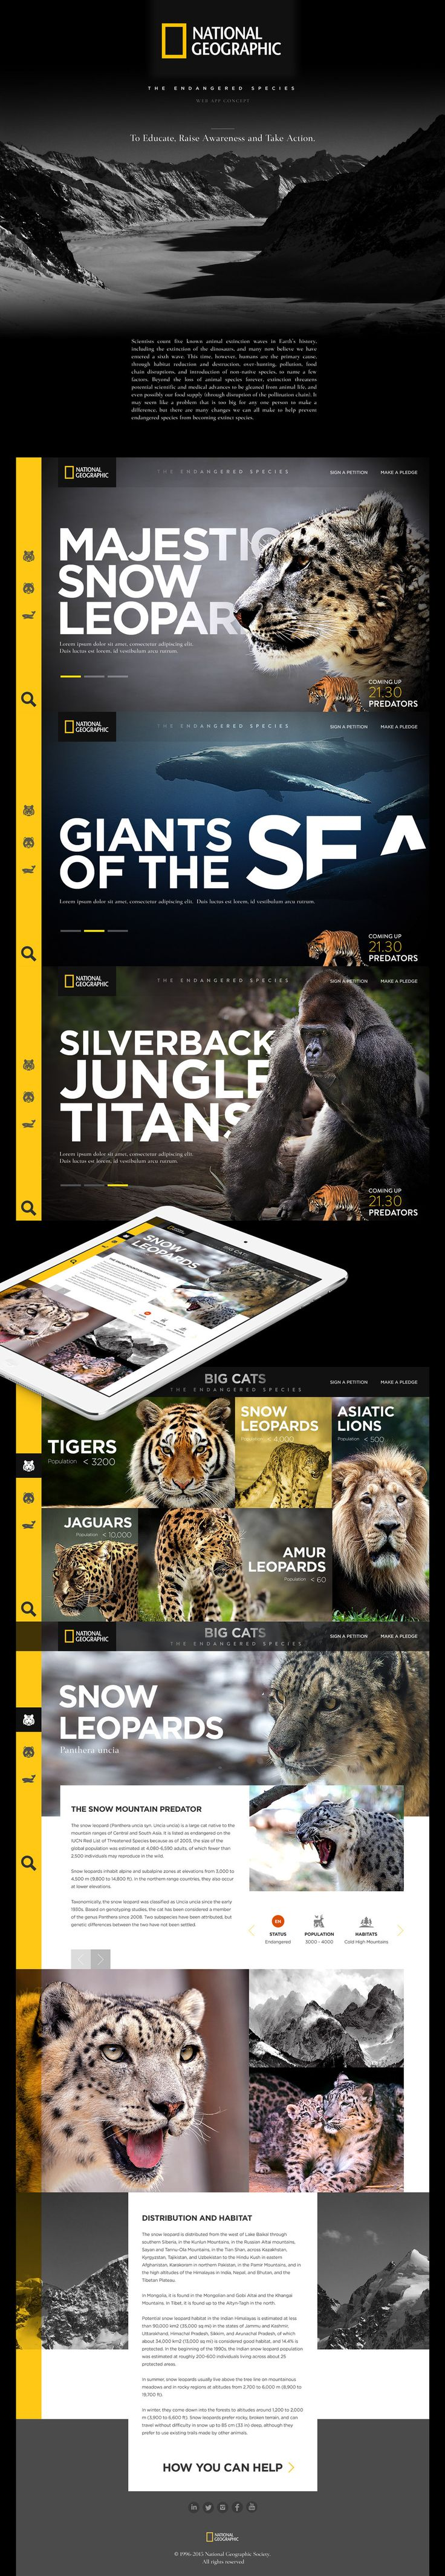 National Geographic webdesign concept. #UI #UserInterface #UX